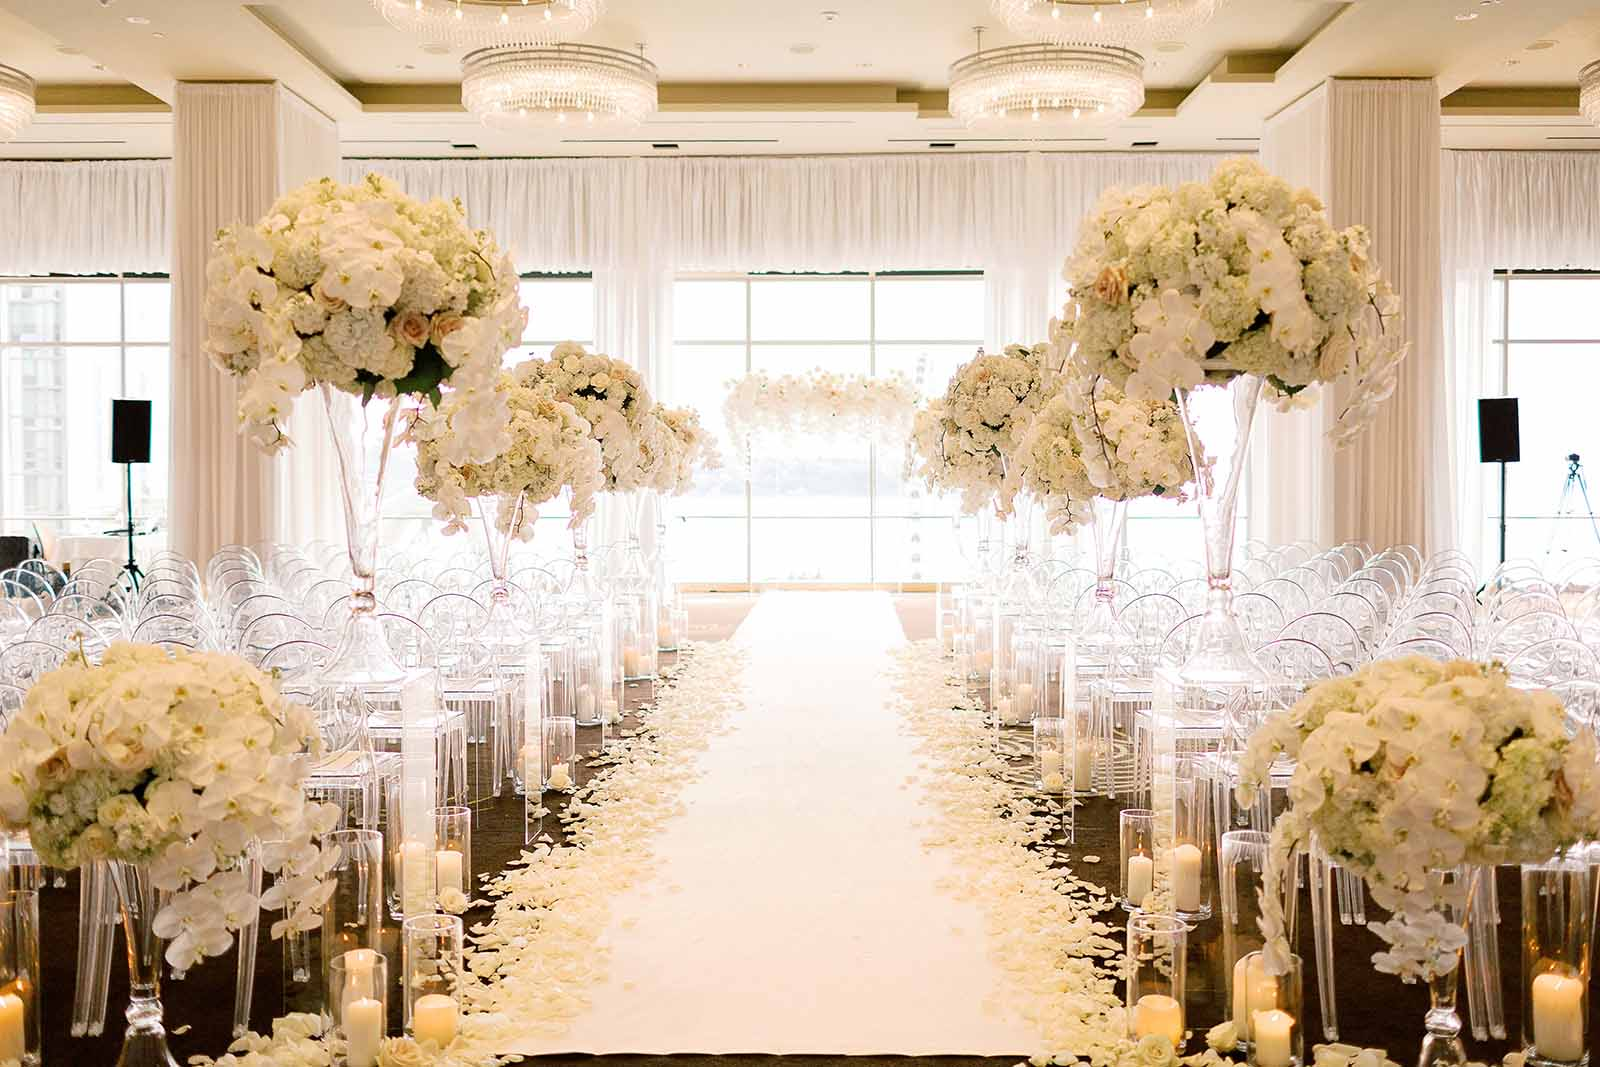 Formal white orchid wedding ballroom ceremony setup with white aisle runner lined with rose petals, candles, and tall floral arrangements on lucite pillars designed by Flora Nova Design